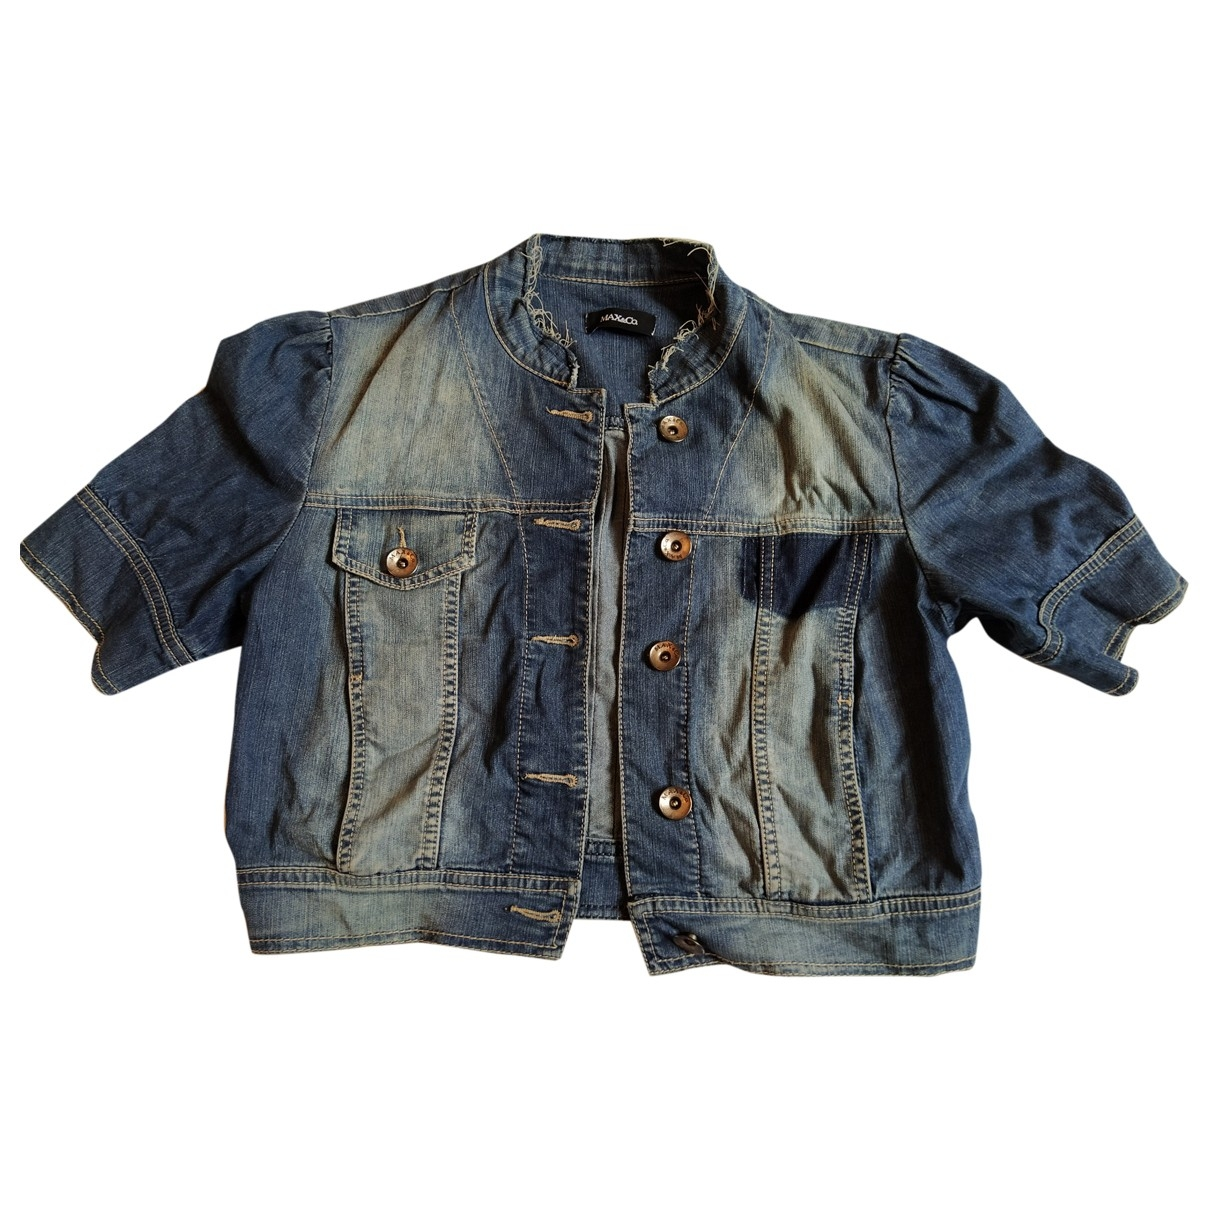 Max & Co \N Jacke in Denim - Jeans